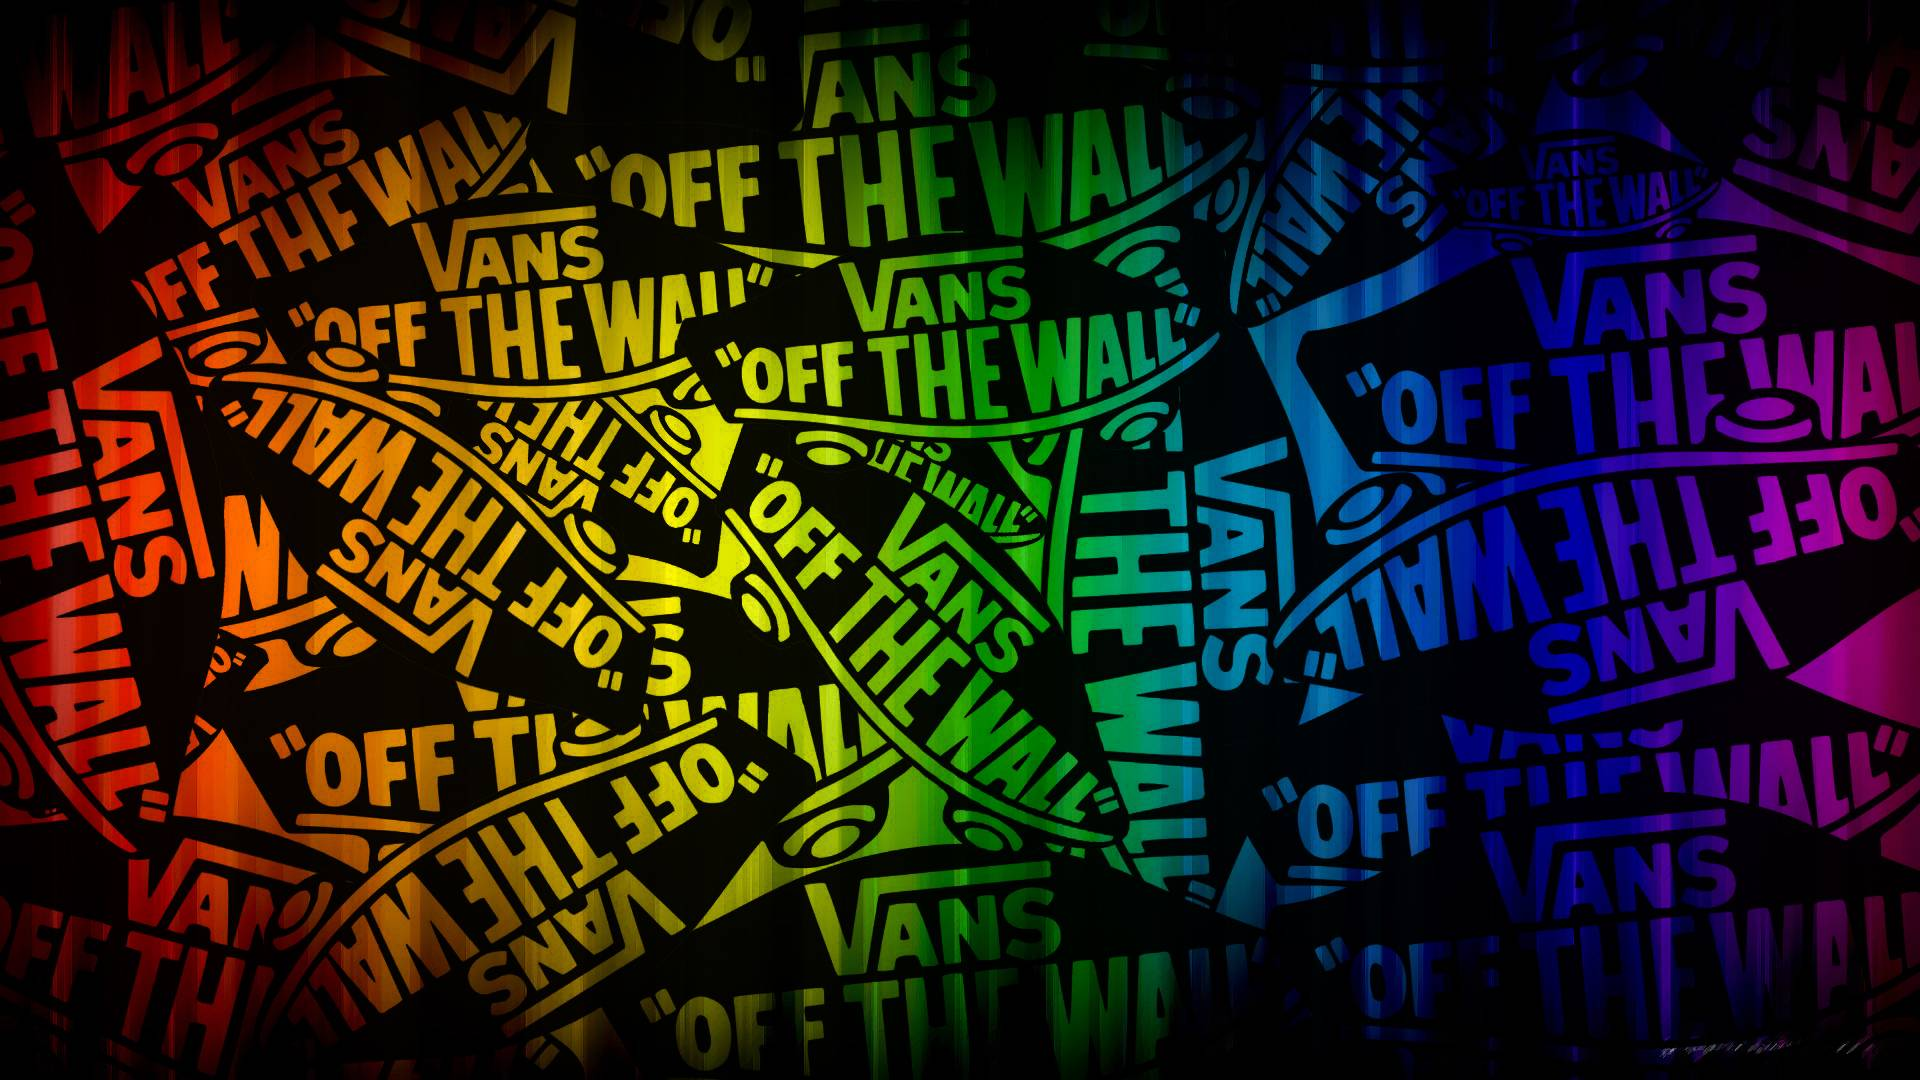 vans: off the wall wallpapers - wallpaper cave